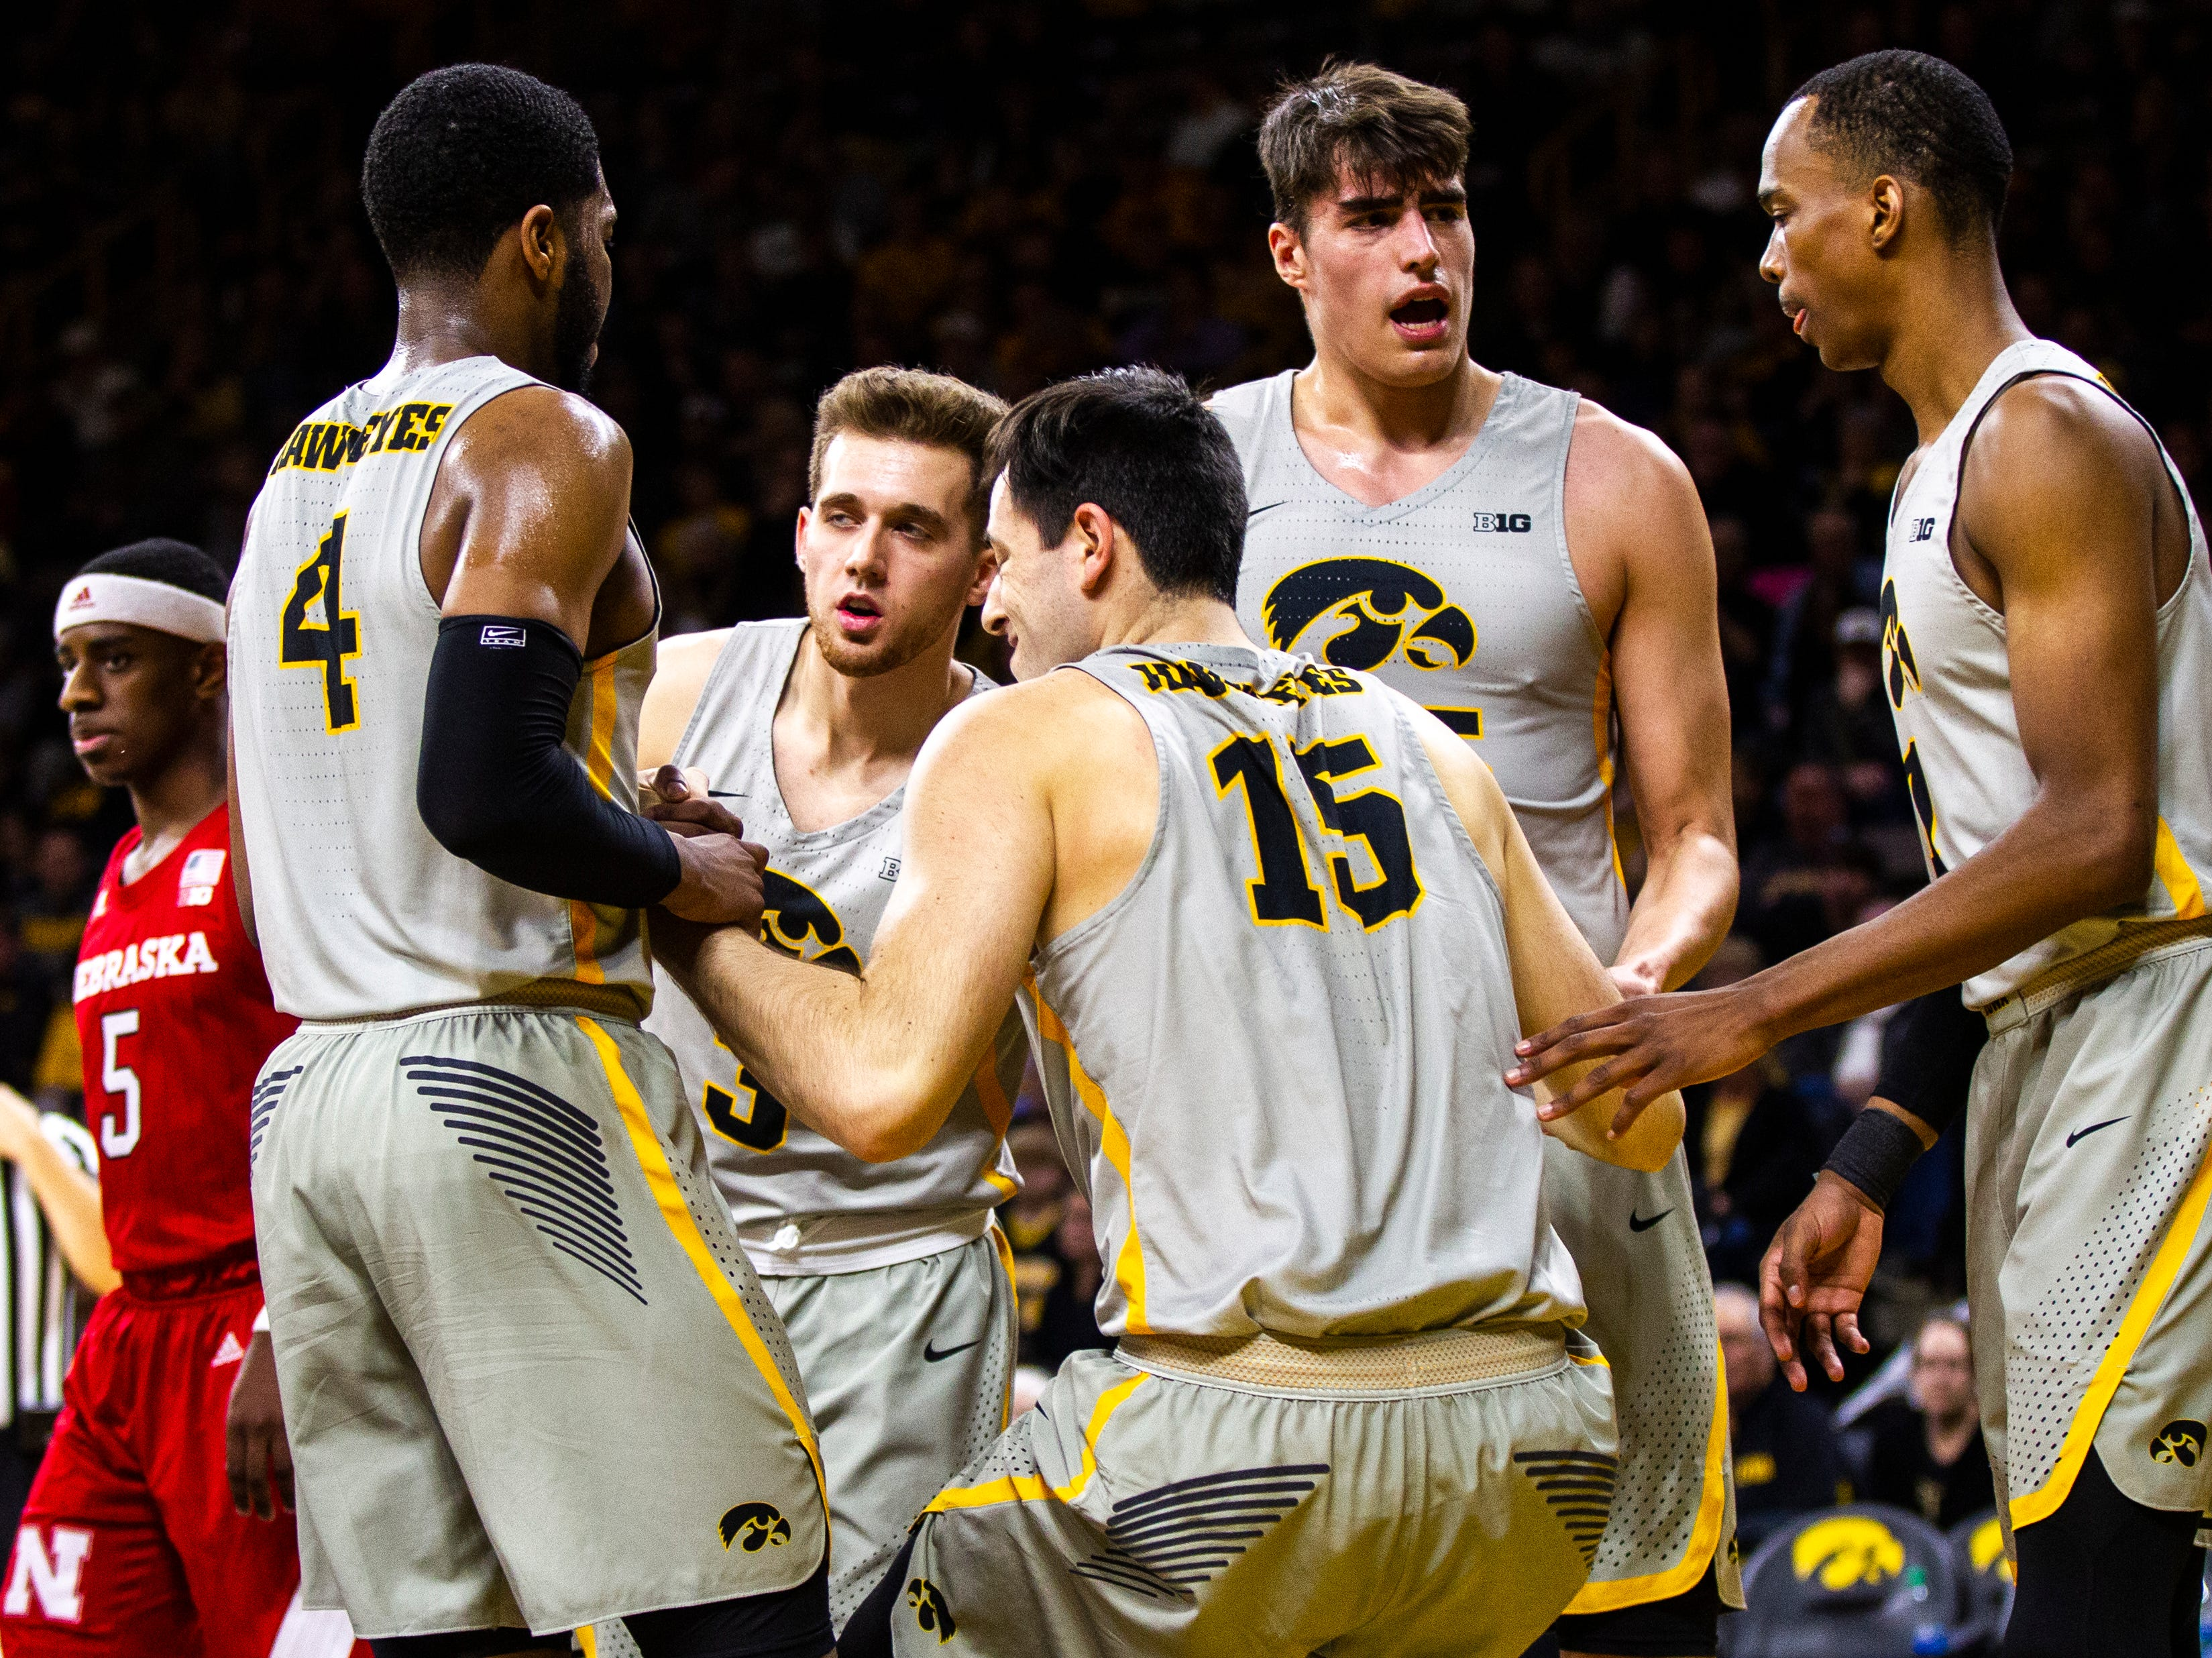 Iowa forward Ryan Kriener (15) gets helped up by teammates Iowa guard Isaiah Moss (4) Iowa guard Isaiah Moss (4) Iowa forward Luka Garza (55) and Iowa guard Maishe Dailey (1) during a NCAA Big Ten Conference men's basketball game on Sunday, Jan. 6, 2019, at the Carver-Hawkeye Arena in Iowa City, Iowa.